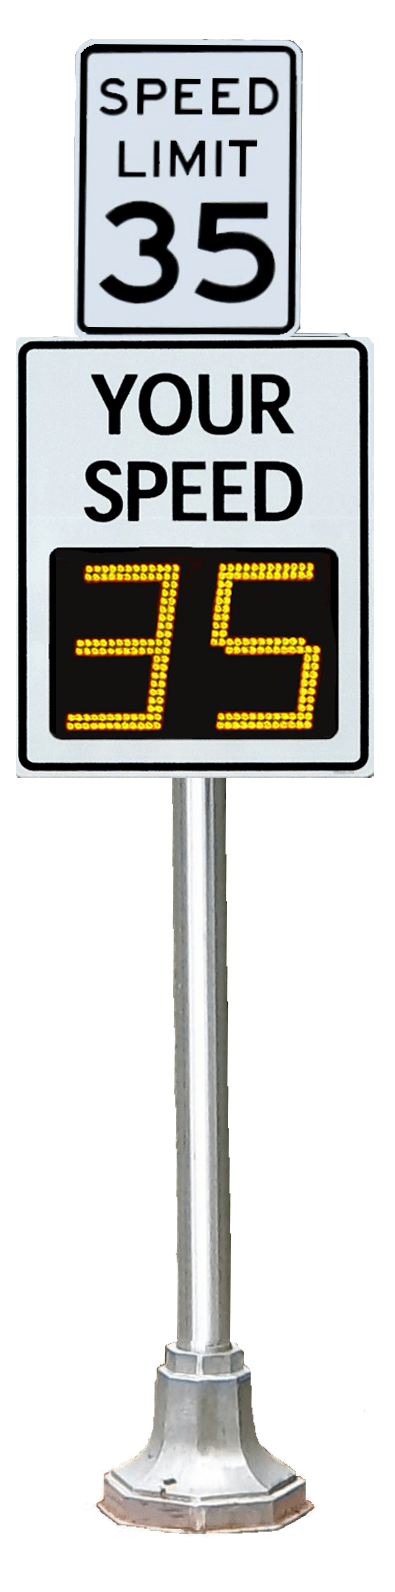 TC-1000 radar speed sign